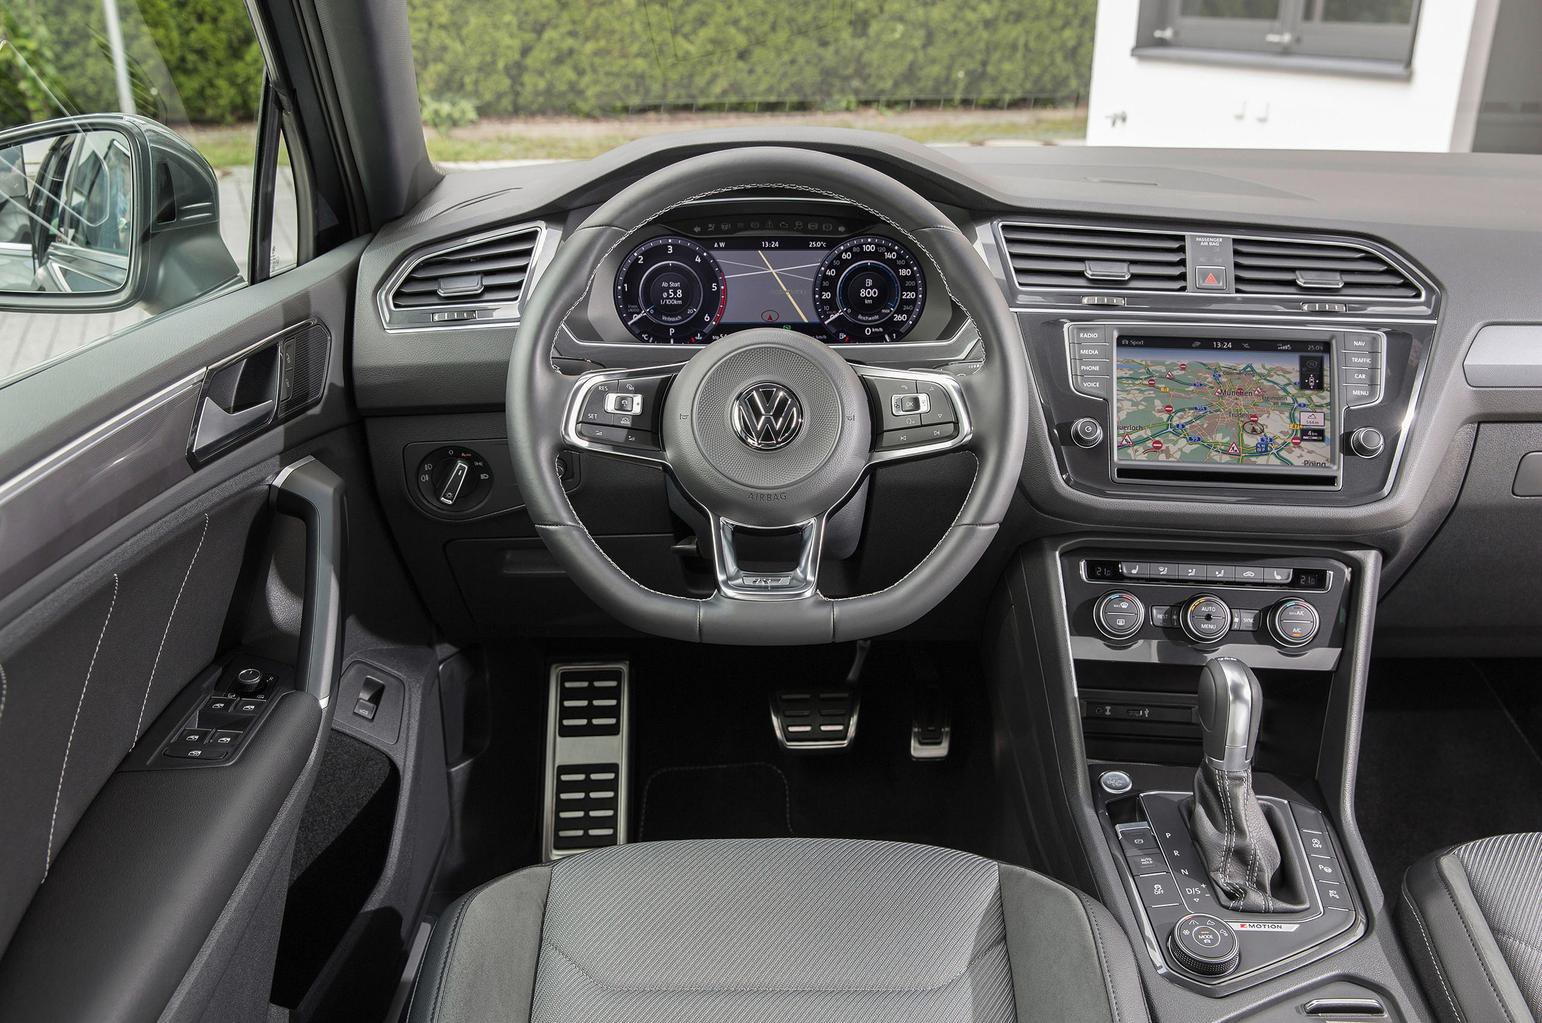 VW Tiguan 2.0 Bi-TDI 240 4Motion review